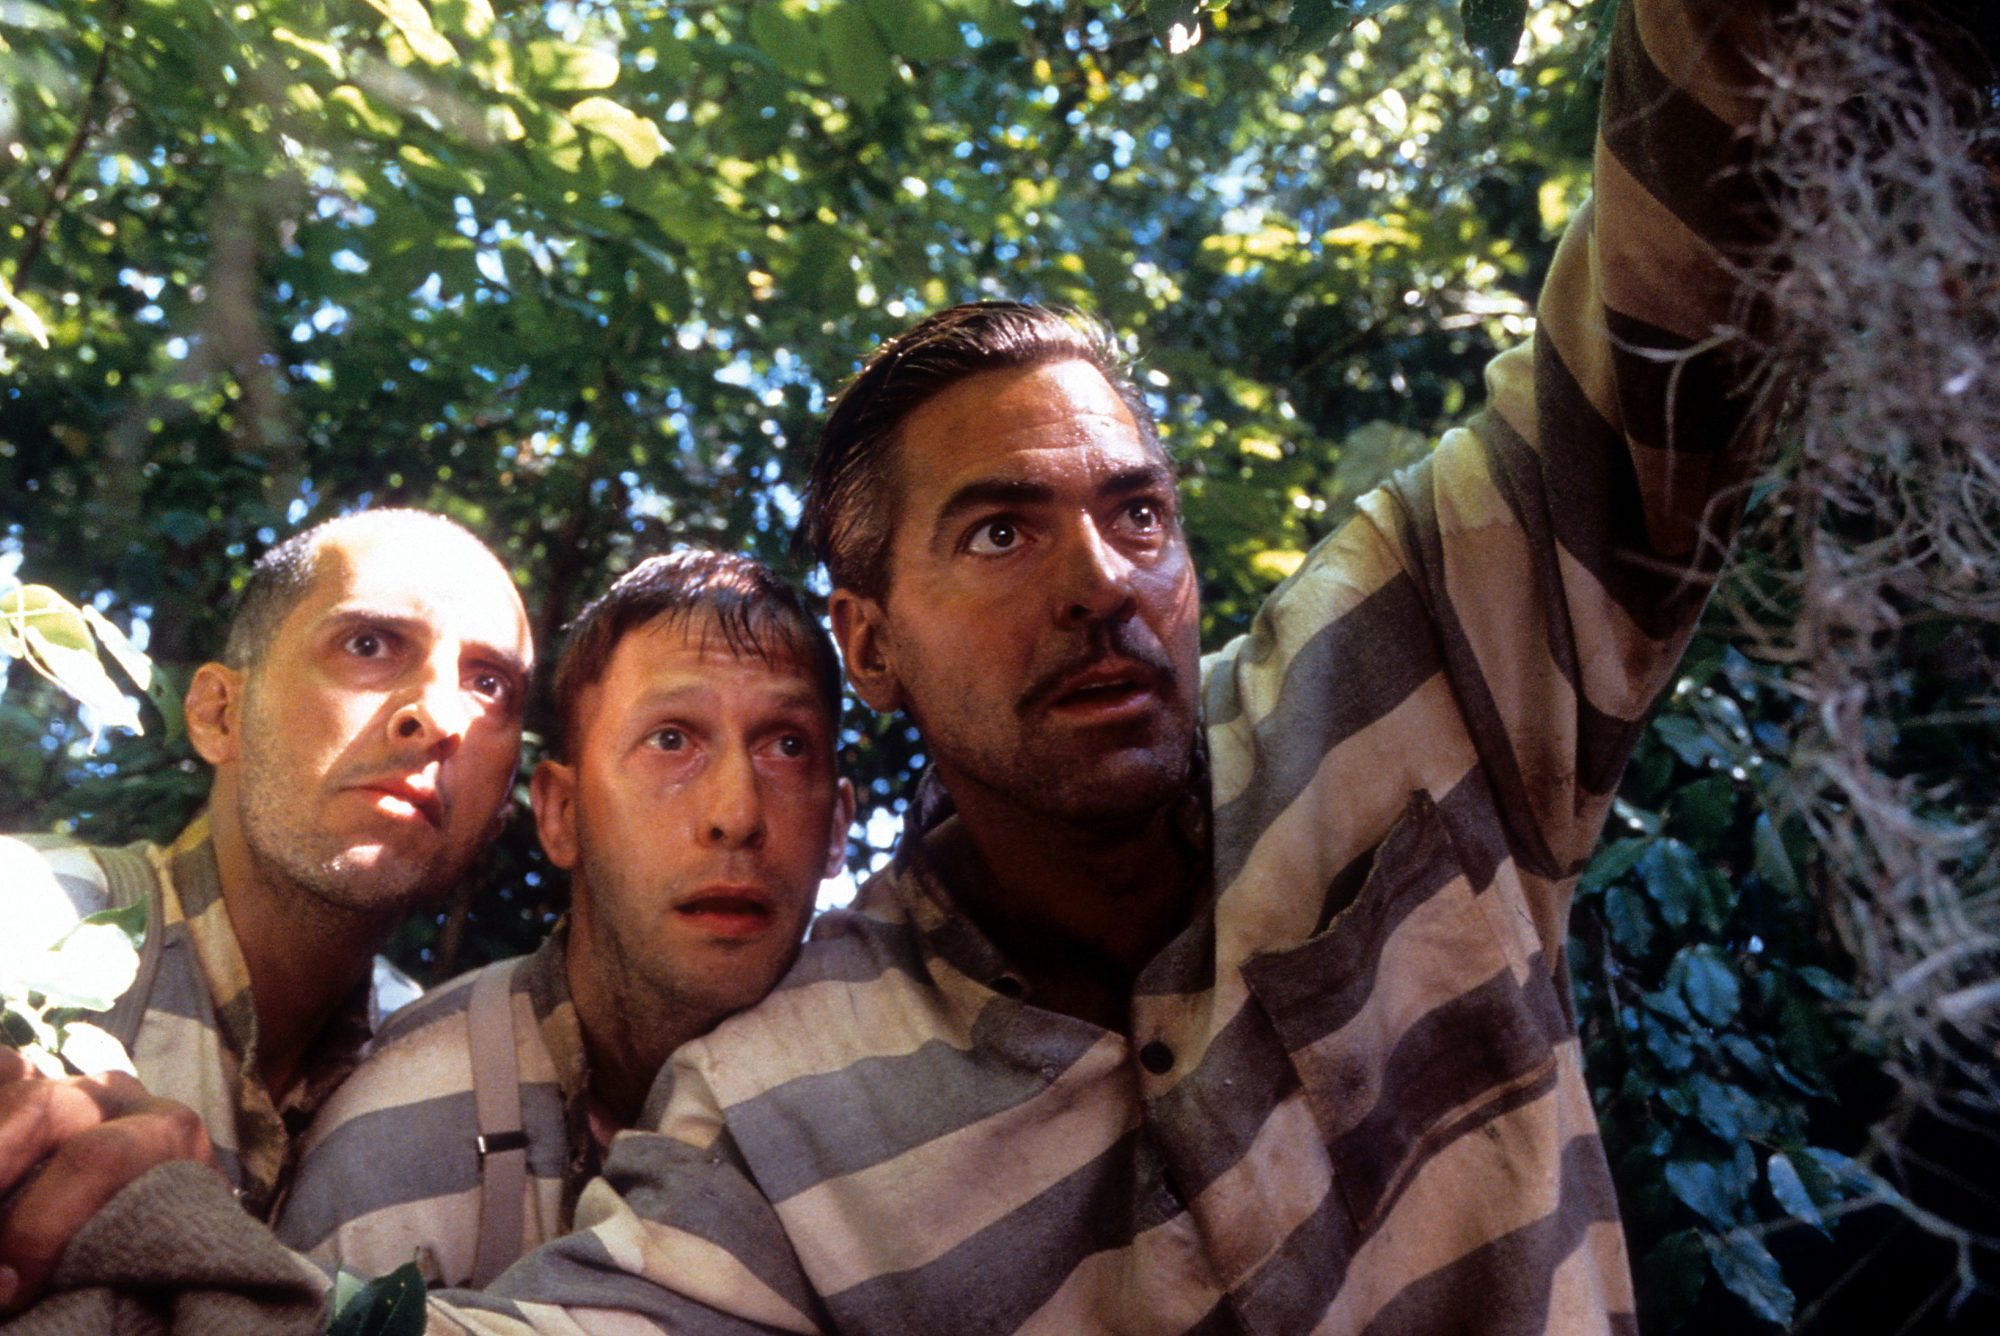 The Chain Gang from O, Brother Where Art Thou